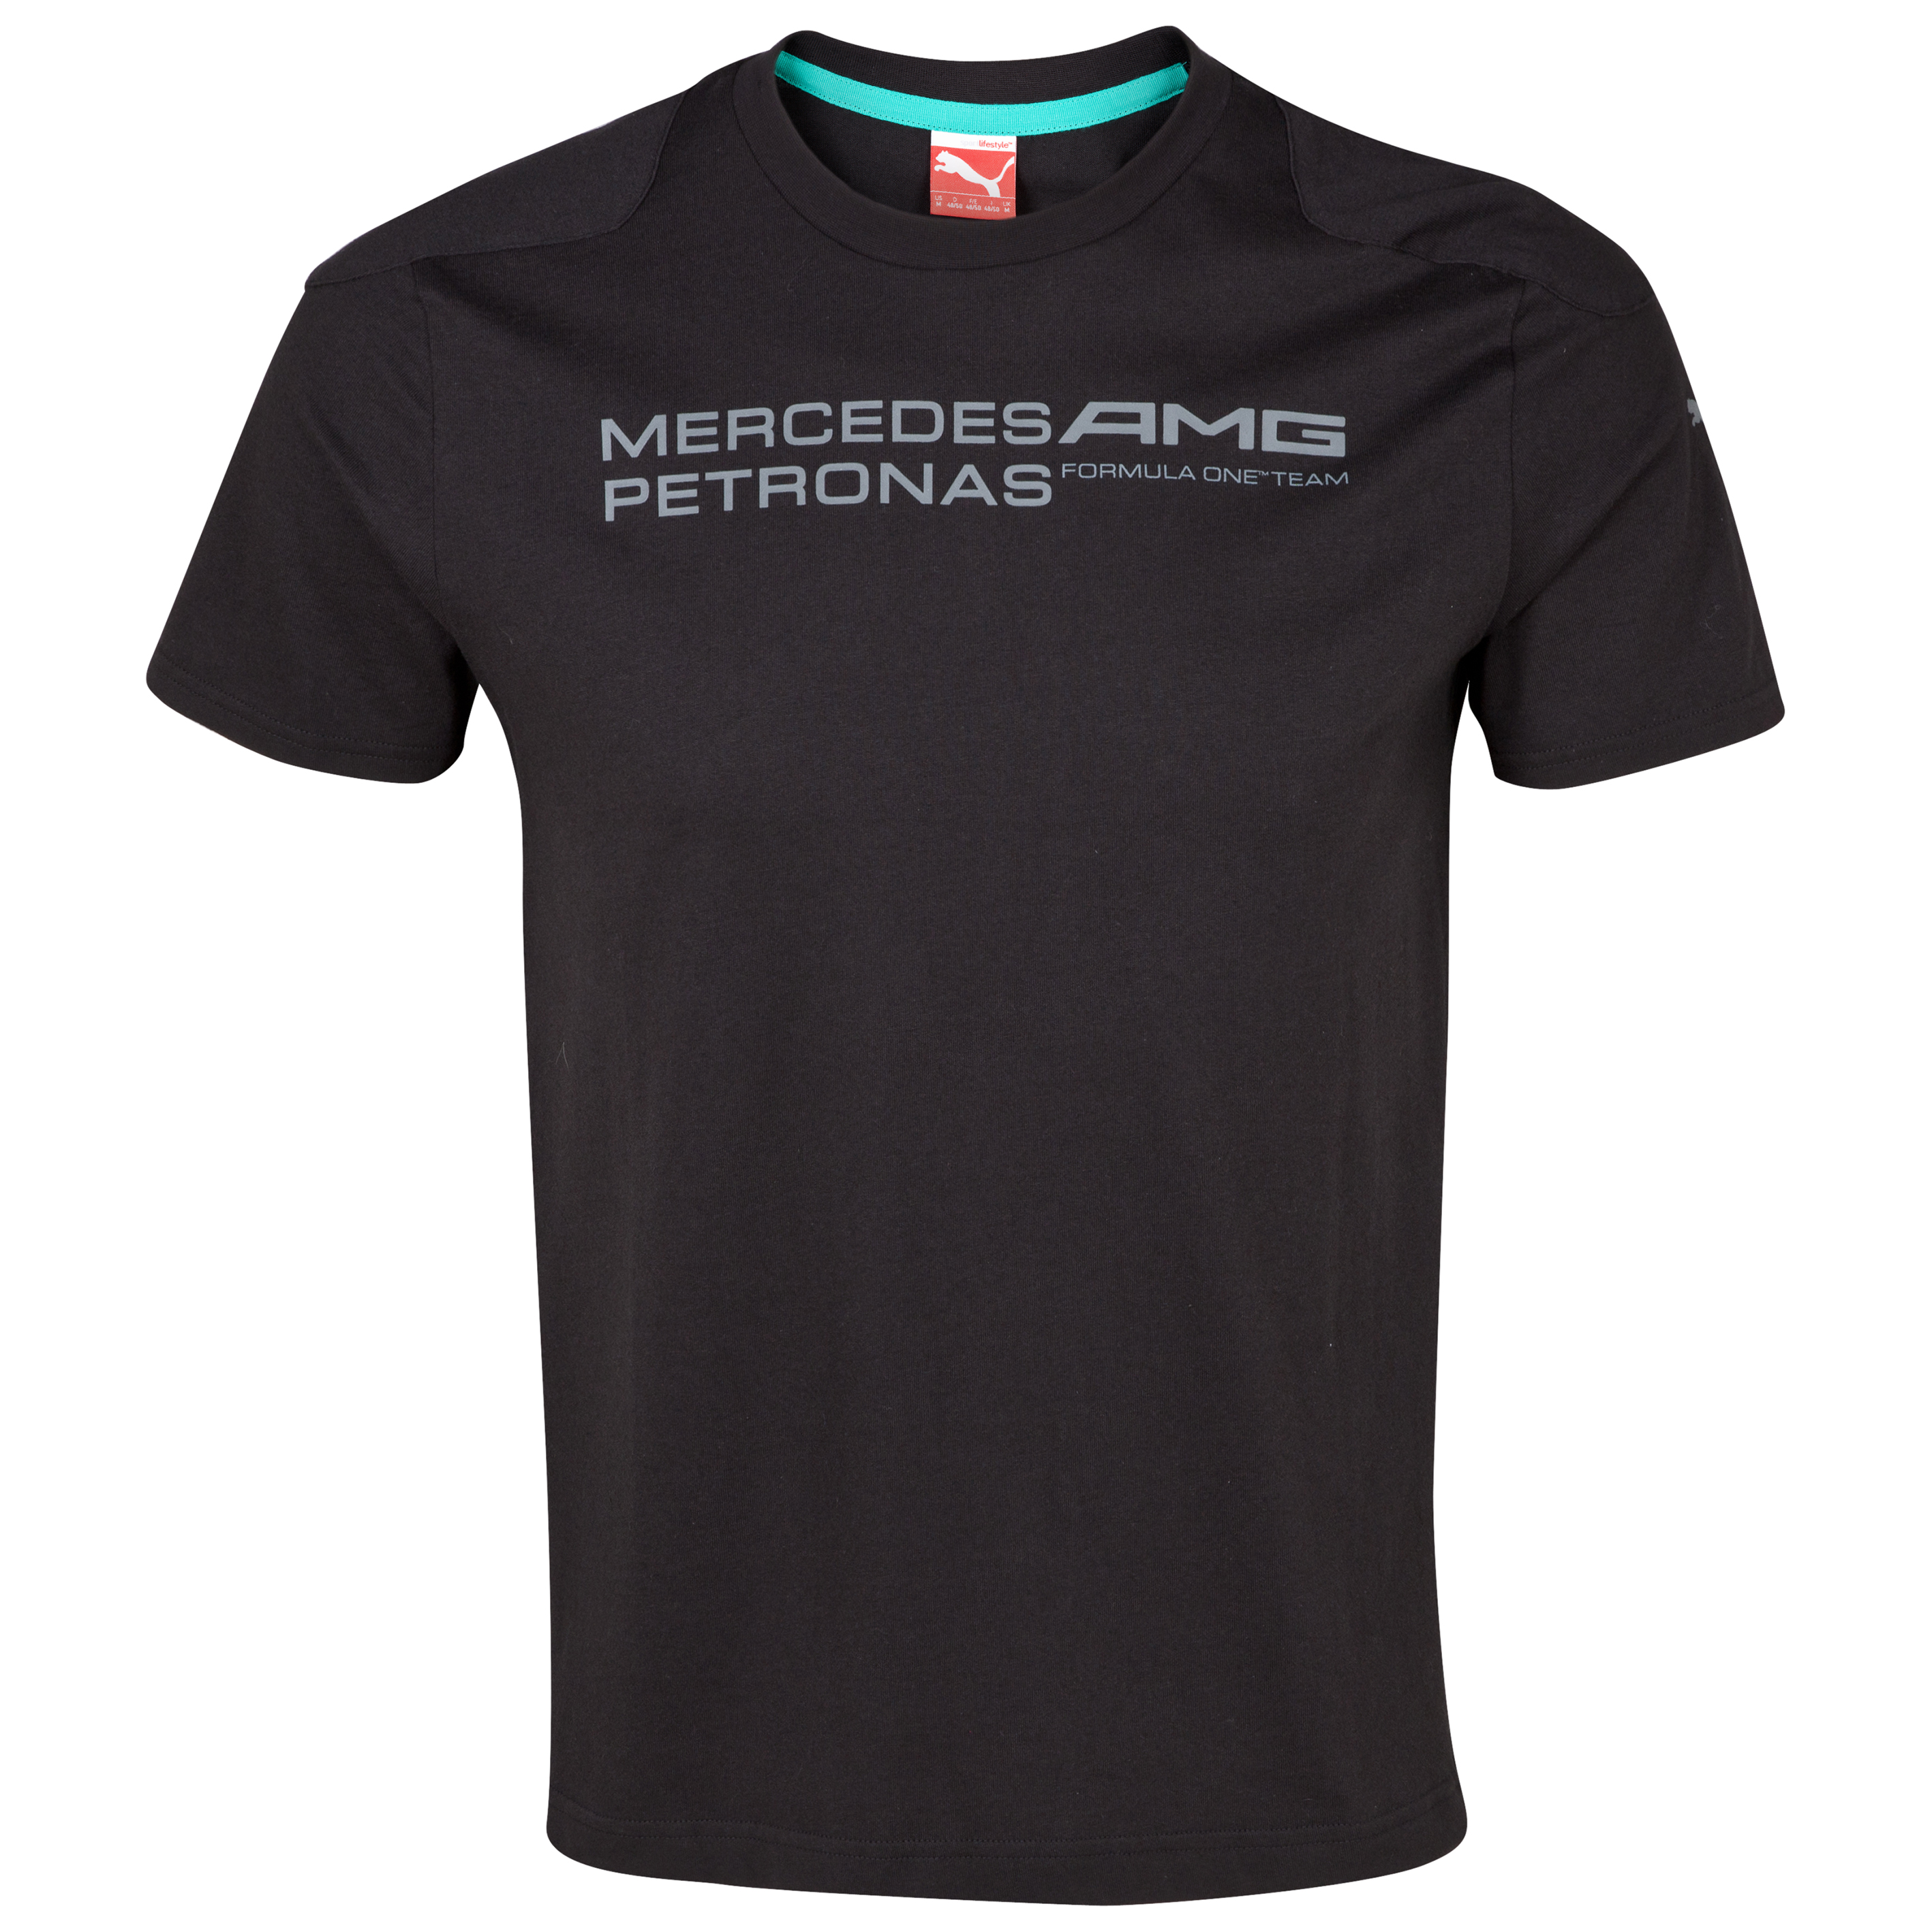 Mercedes AMG Petronas 2013 Team Logo T-Shirt - Black